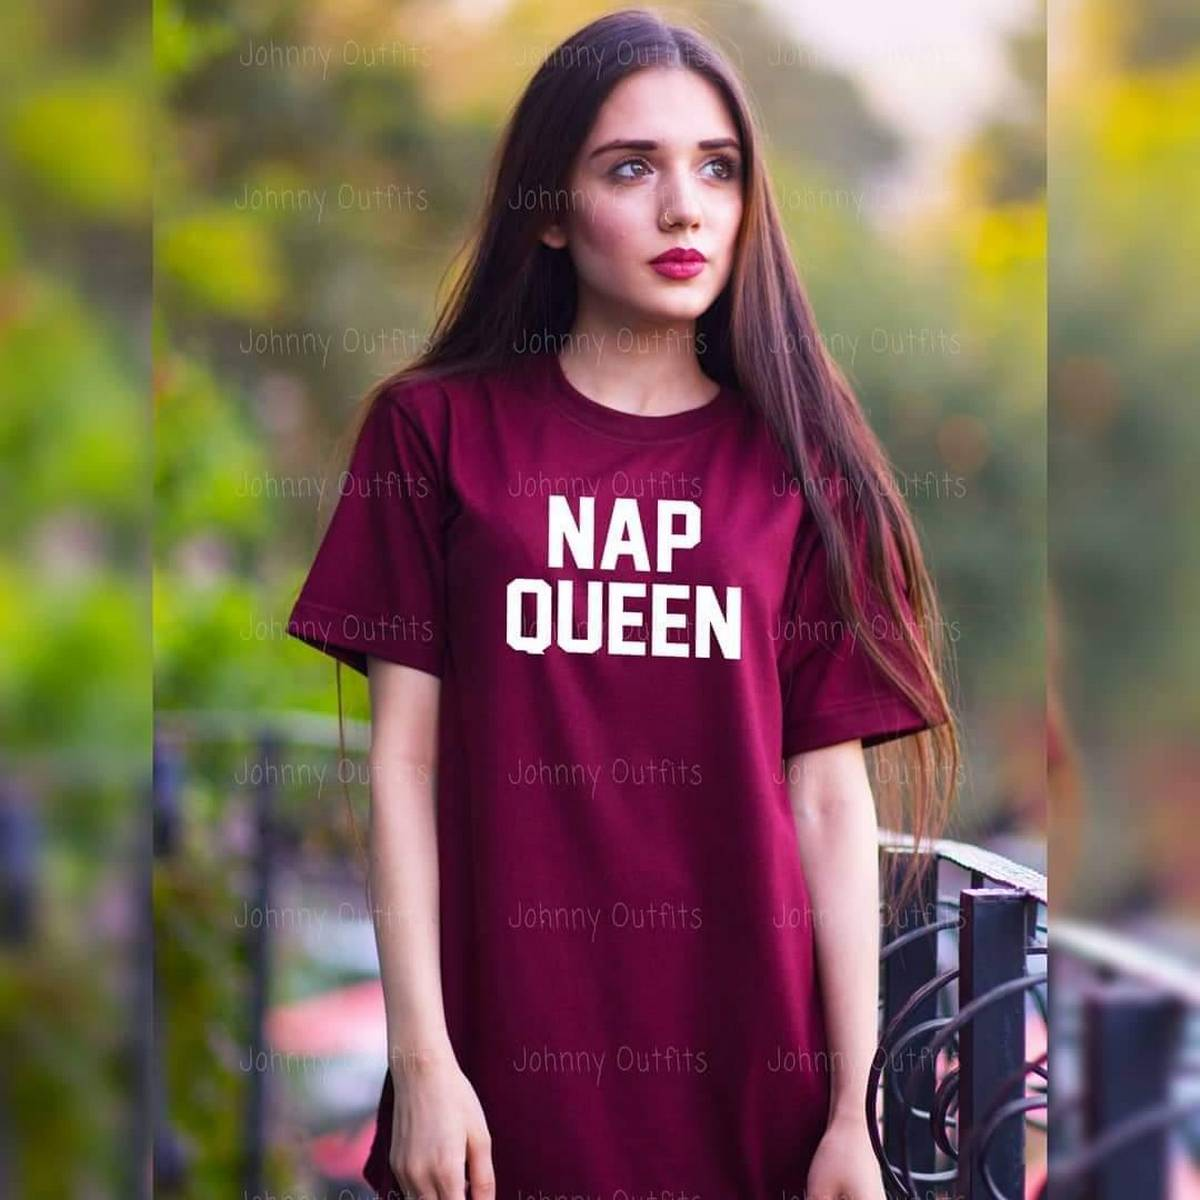 Nap Queen Women Tshirt Cotton Funny Casual Lady White Black Gray Top Tees - Maroon